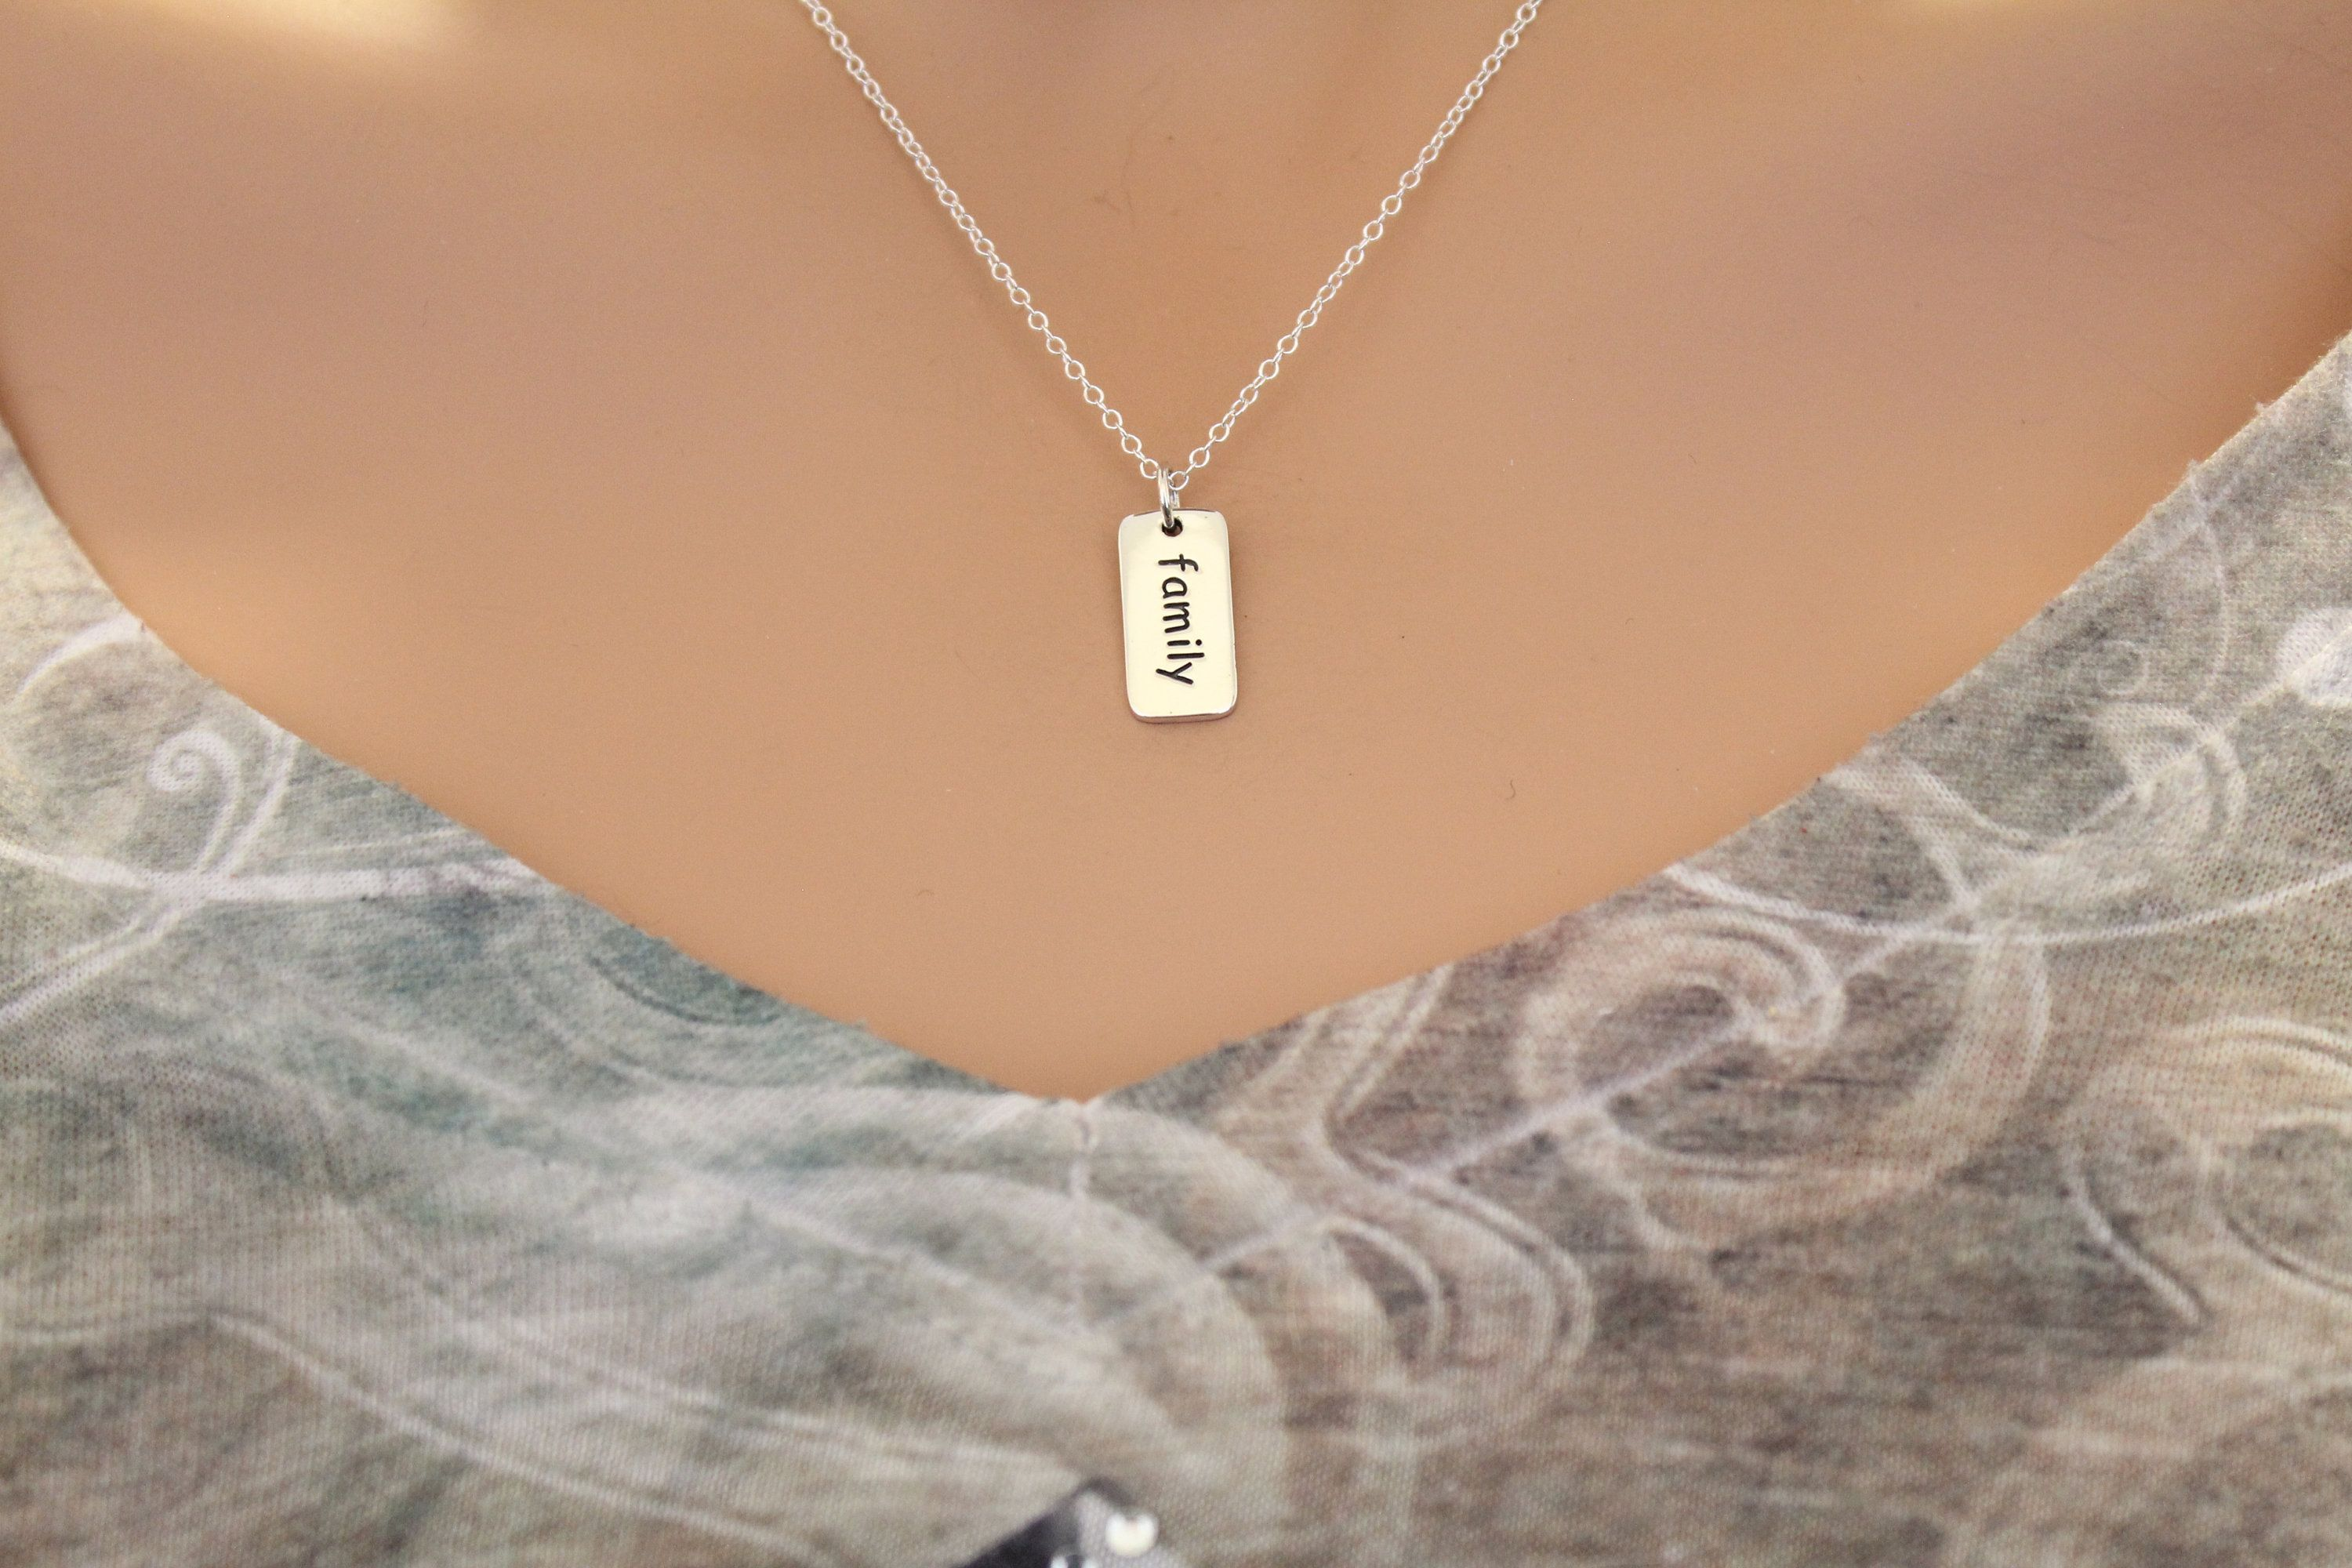 Sterling Silver Word Charm - Family Necklace, Silver Family Word Pendant Necklace, Silver Family Necklace,